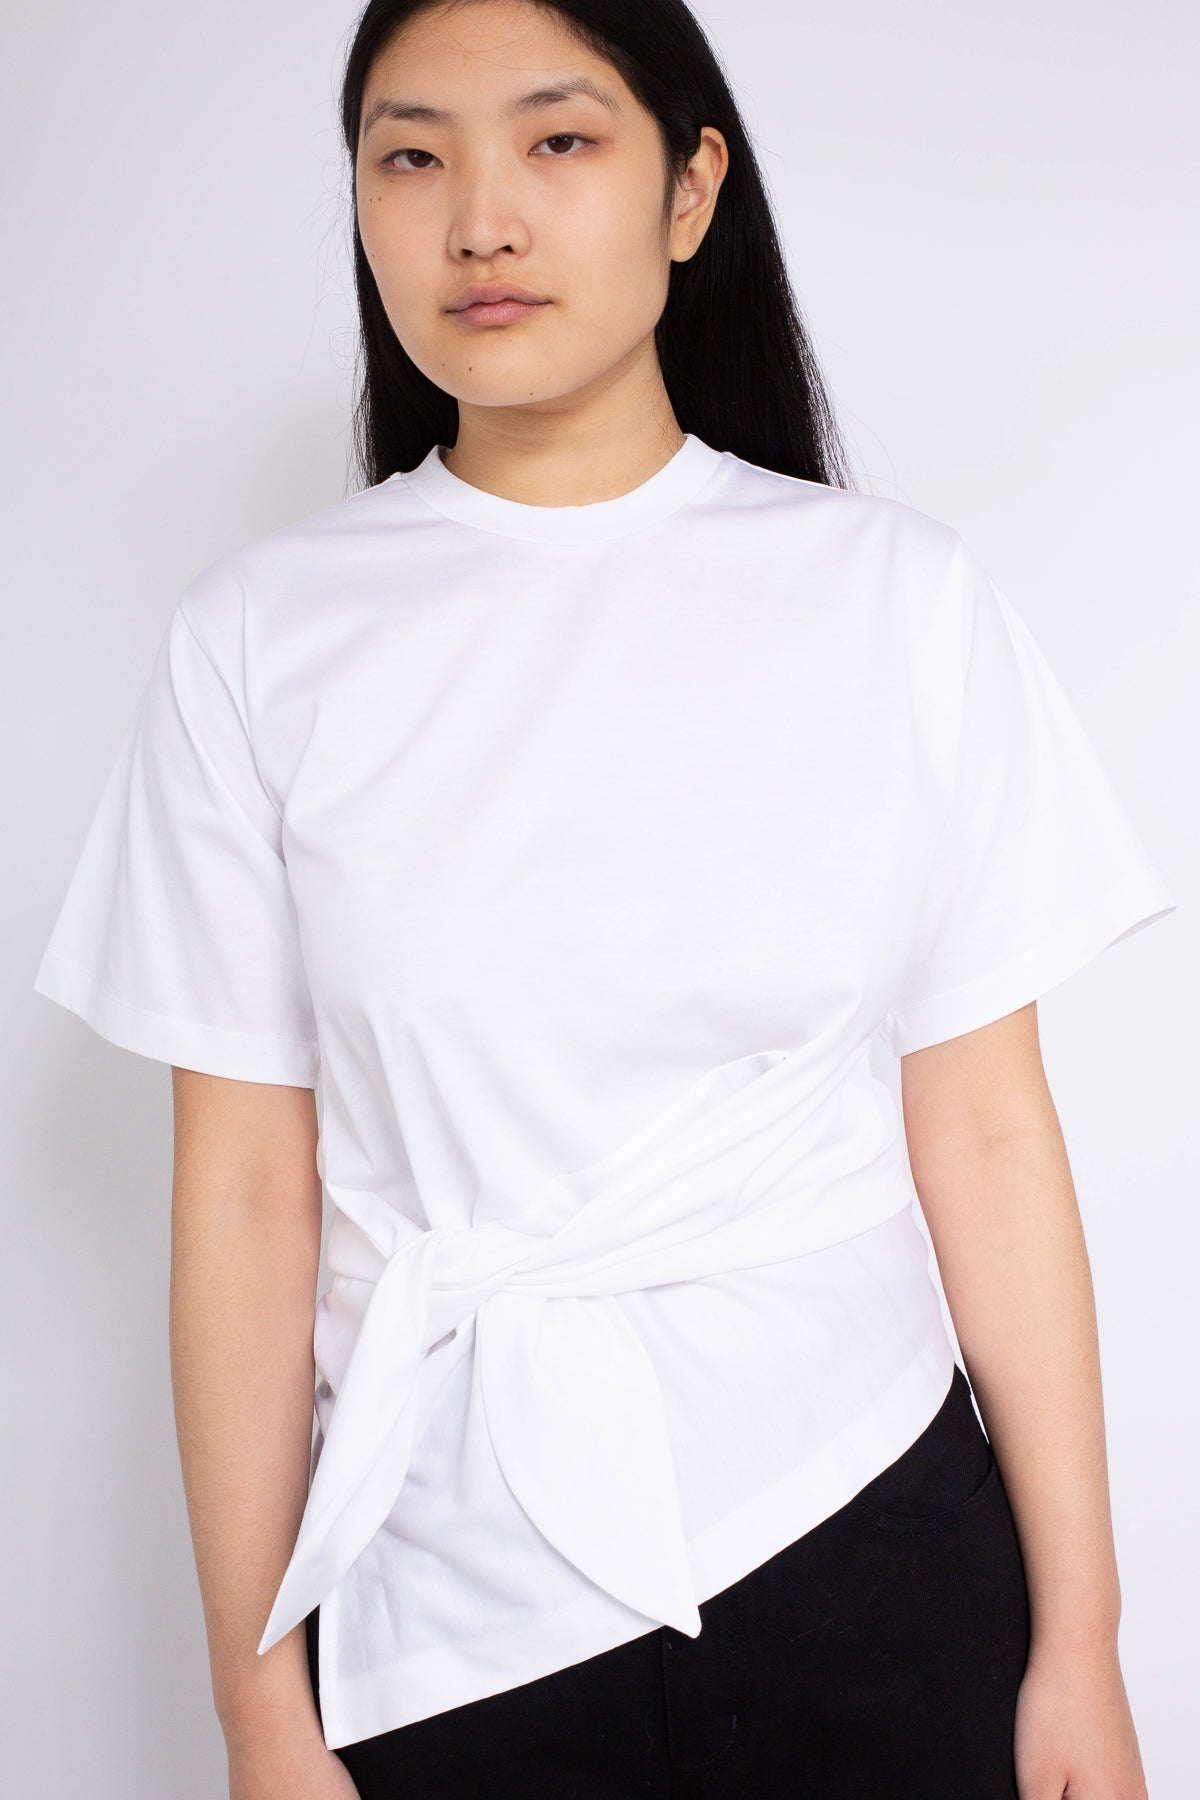 KNOT T-SHIRT IN WHITE - marques-almeida-dev